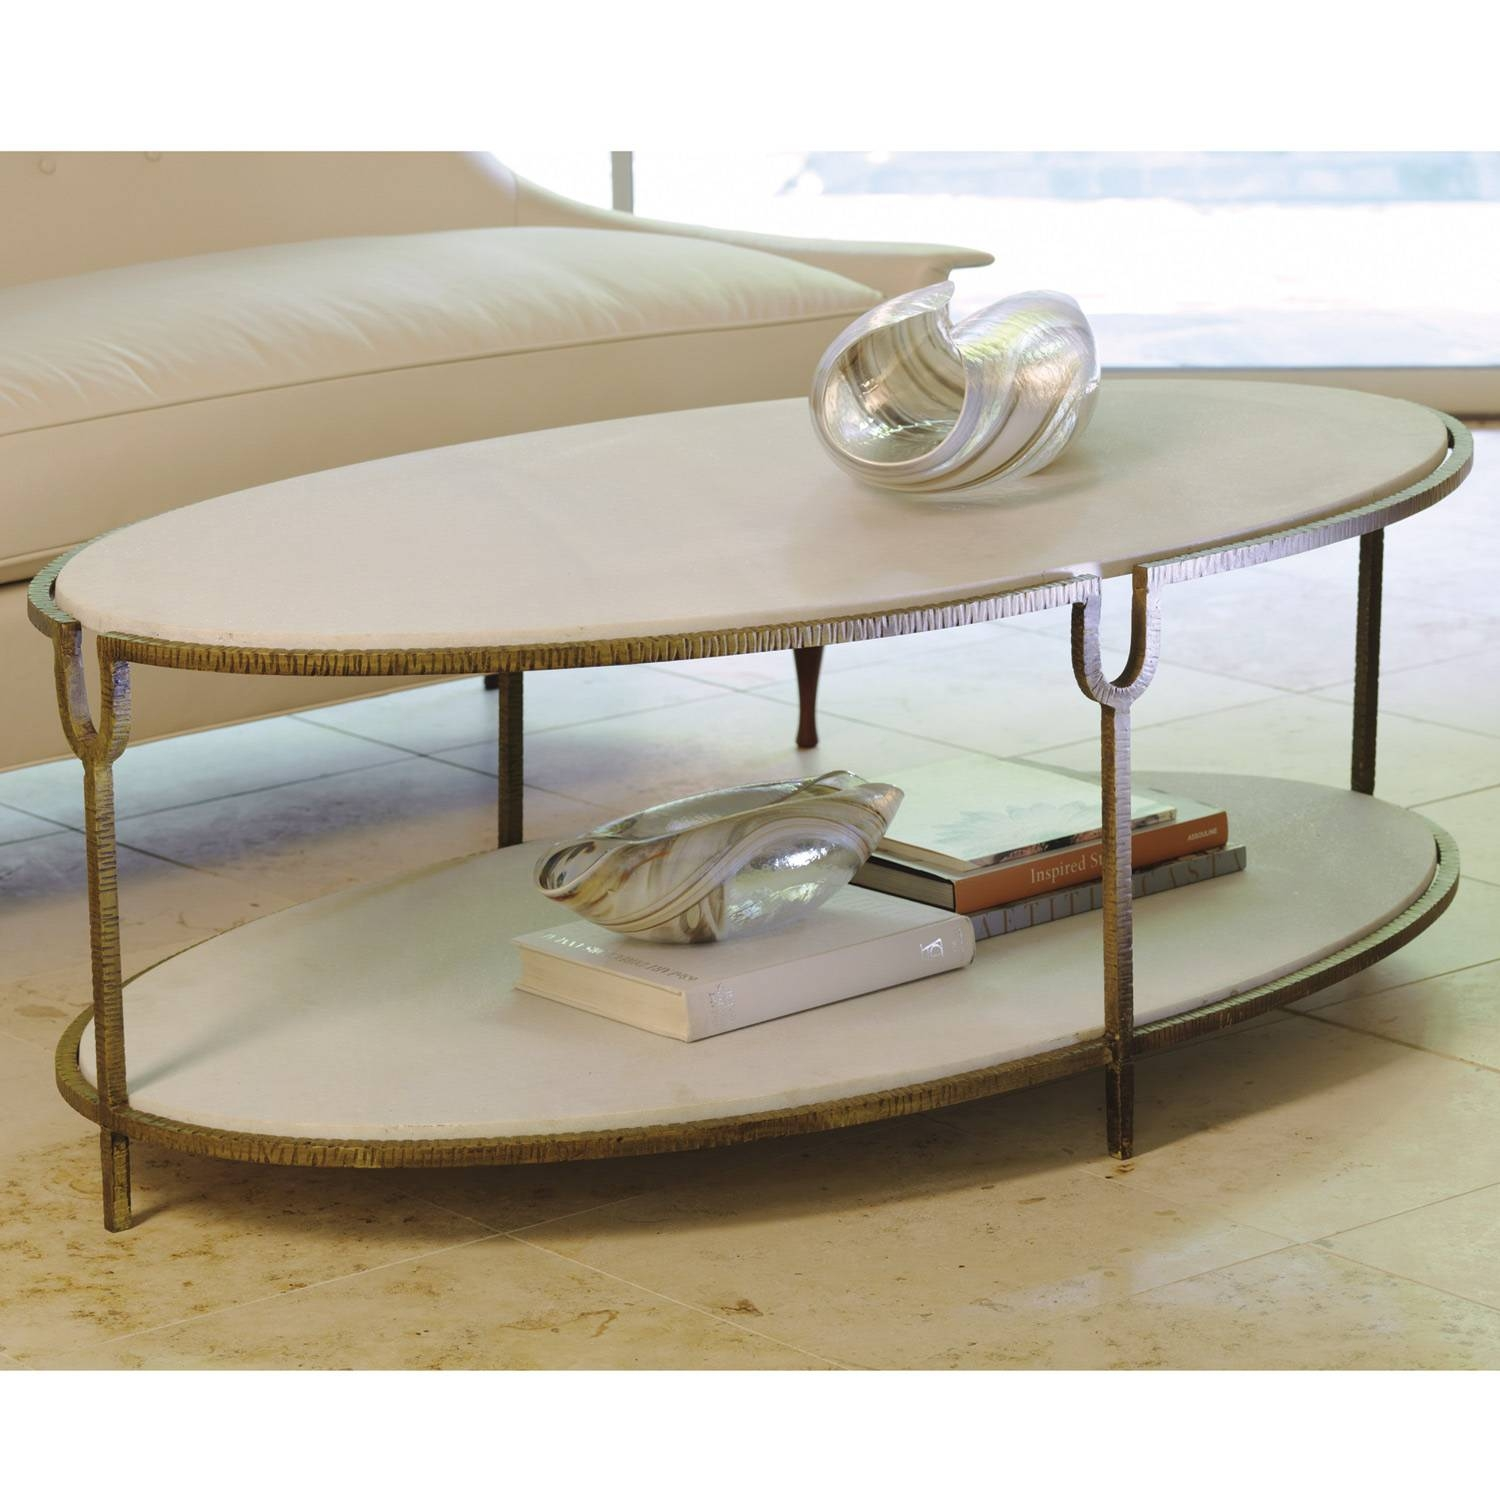 A r t furniture greenpoint oval dining table in coffee bean - Unsual Glas Top Shapes With White Stones Base As Abstract Art With Coffee Tables With Oval